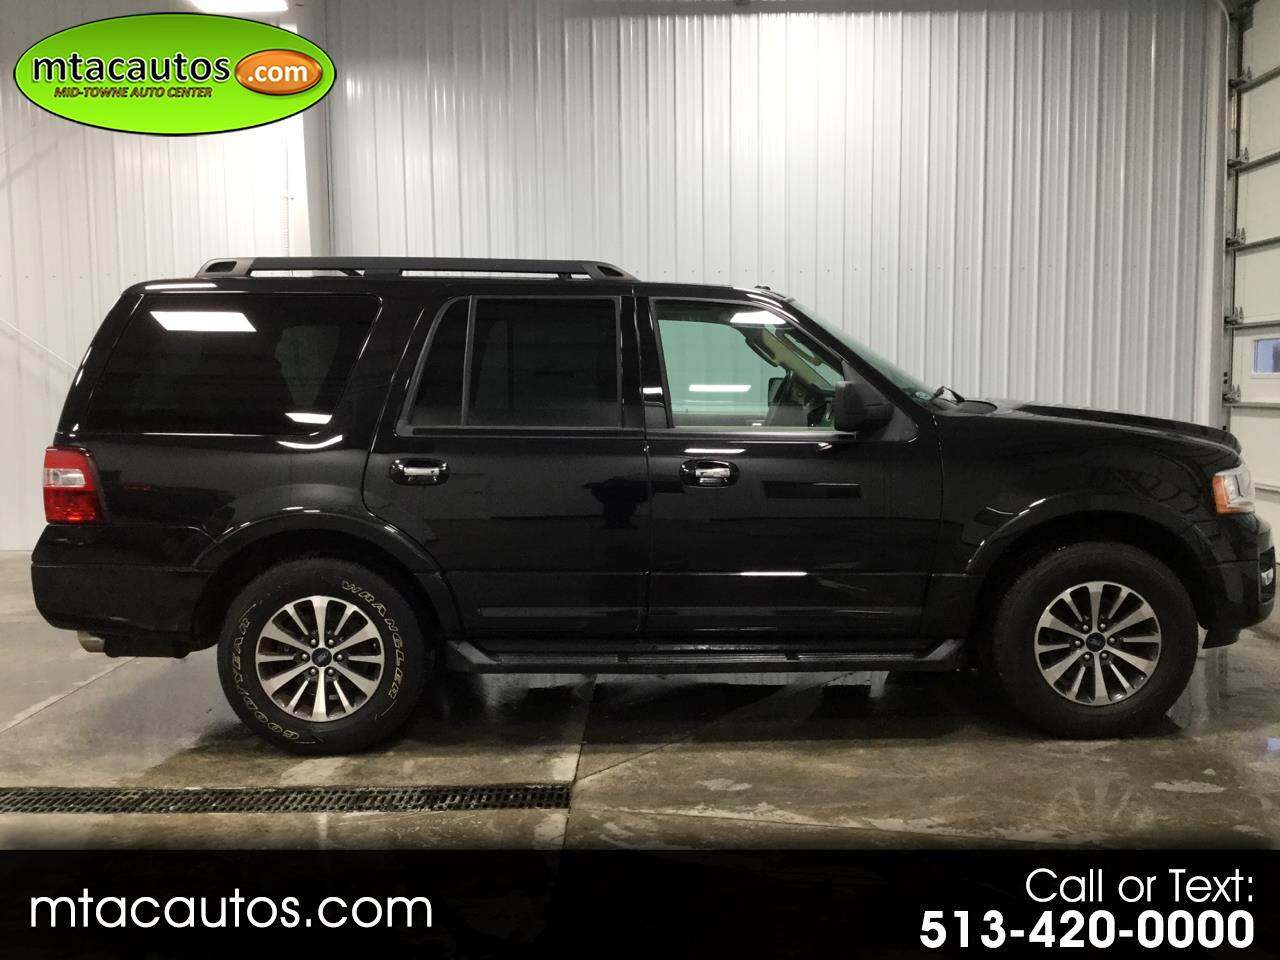 2015 Ford Expedition XLT 4WD